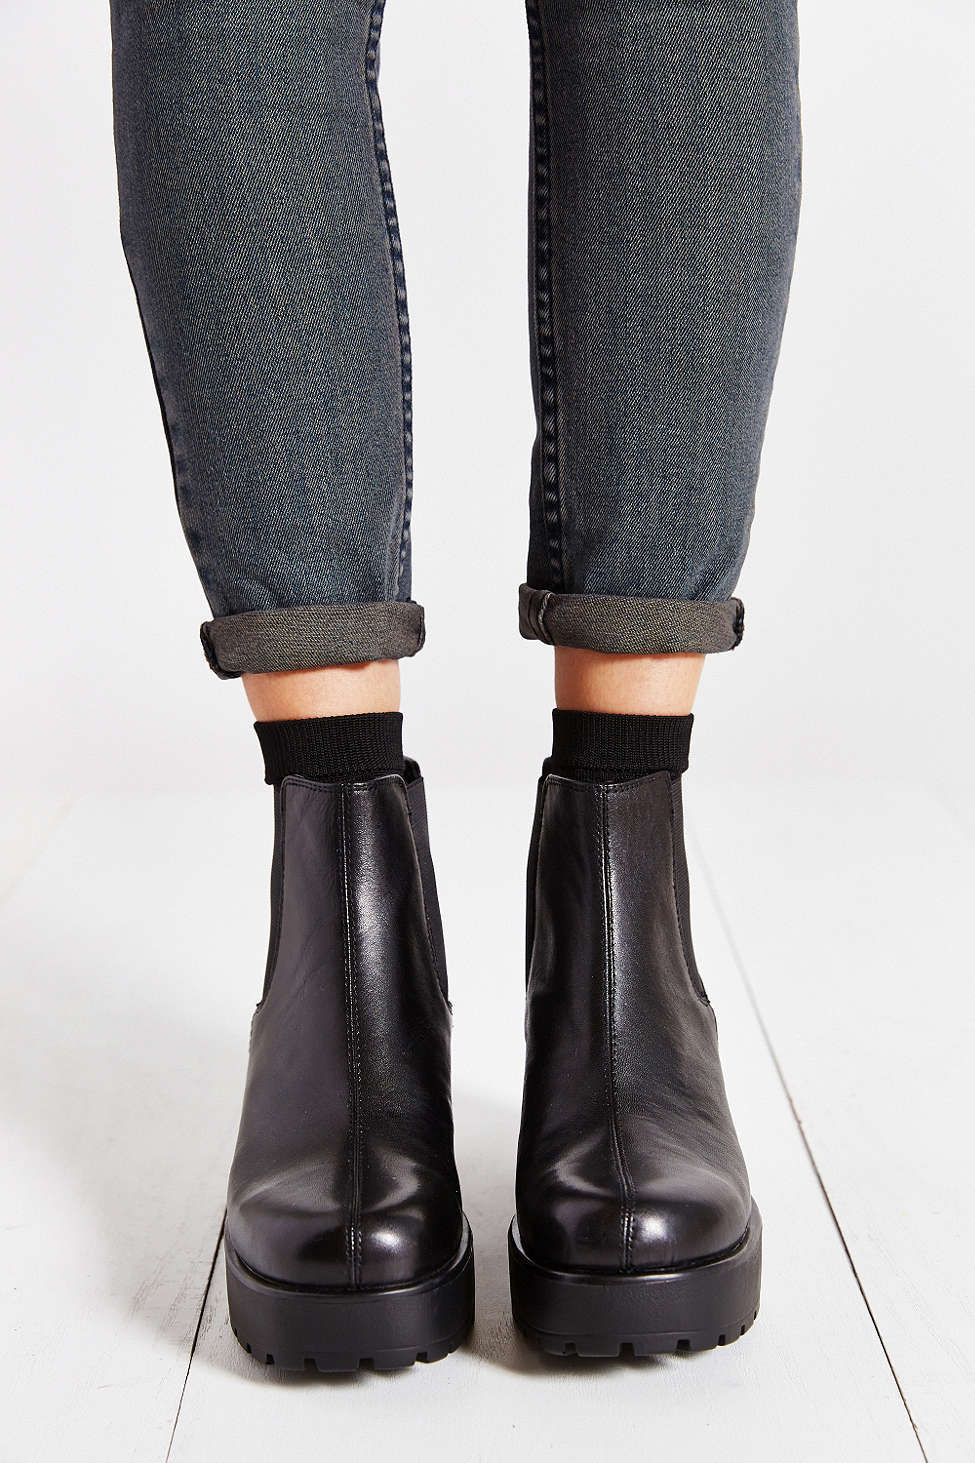 Dioon Dioon Chaussures Vagabond Chelsea Boot Vagabond Chelsea Boot Vagabond Chaussures zCqHII